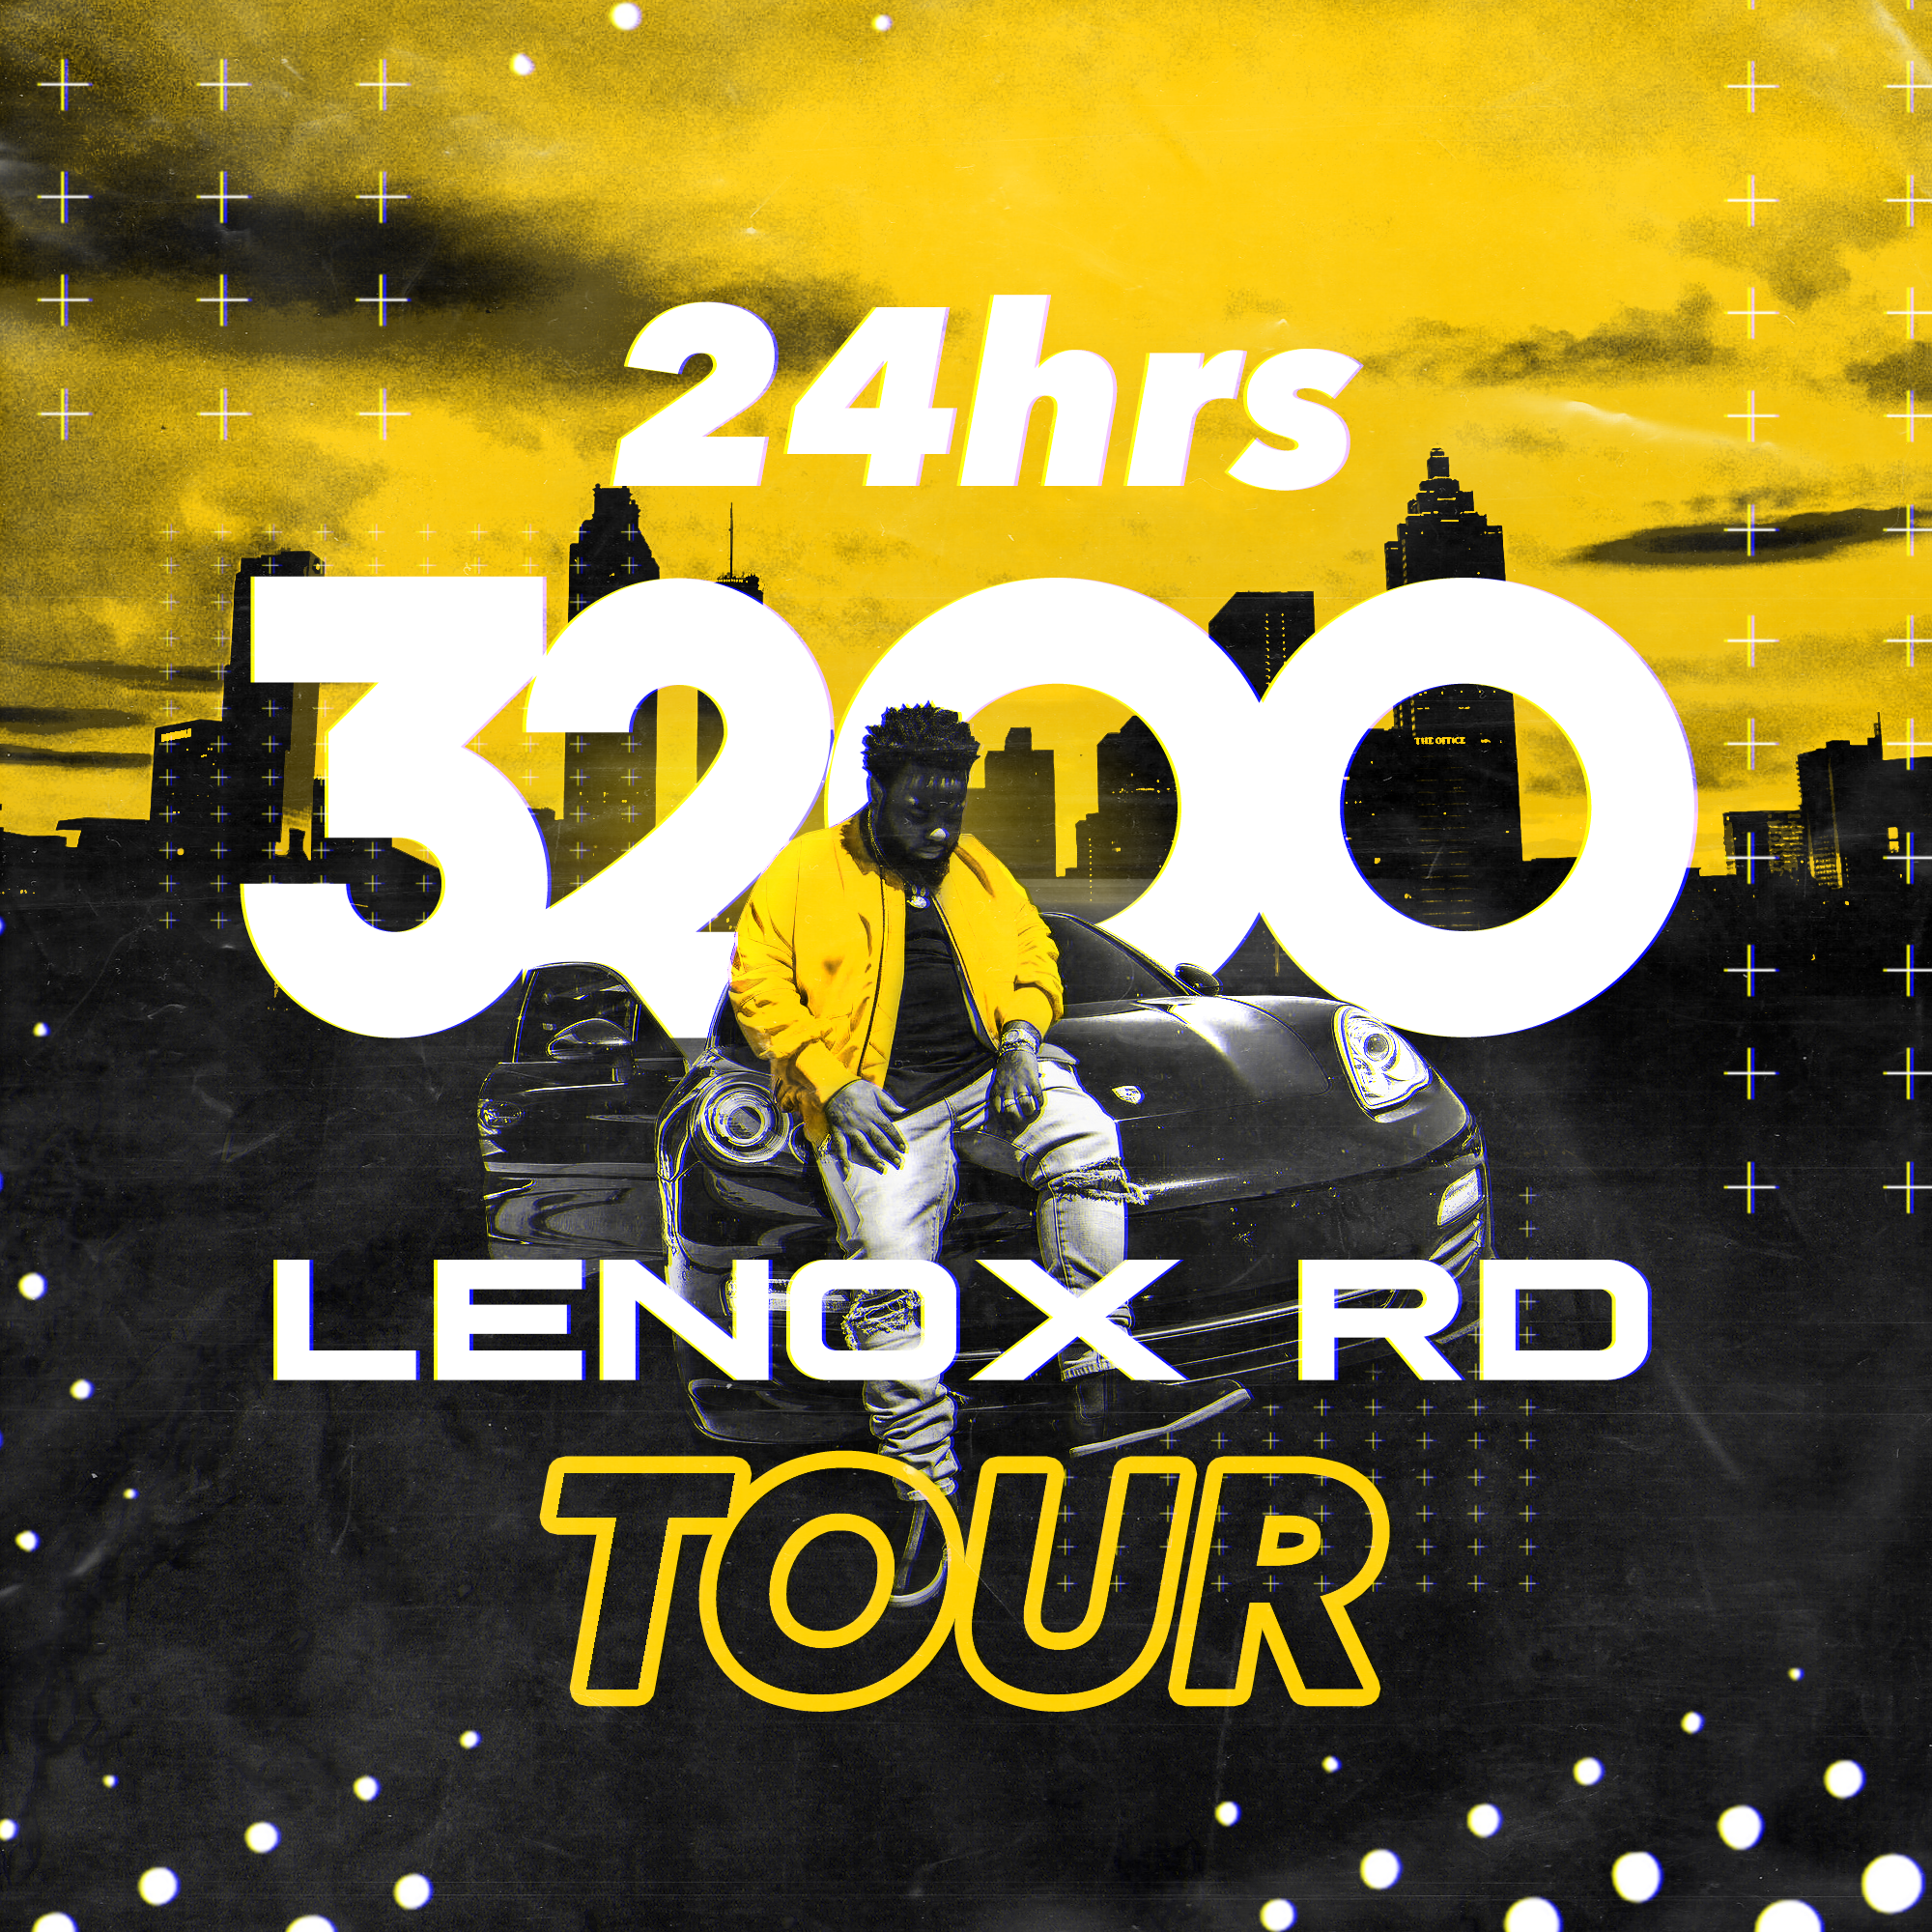 3200 lenox rd poster.png